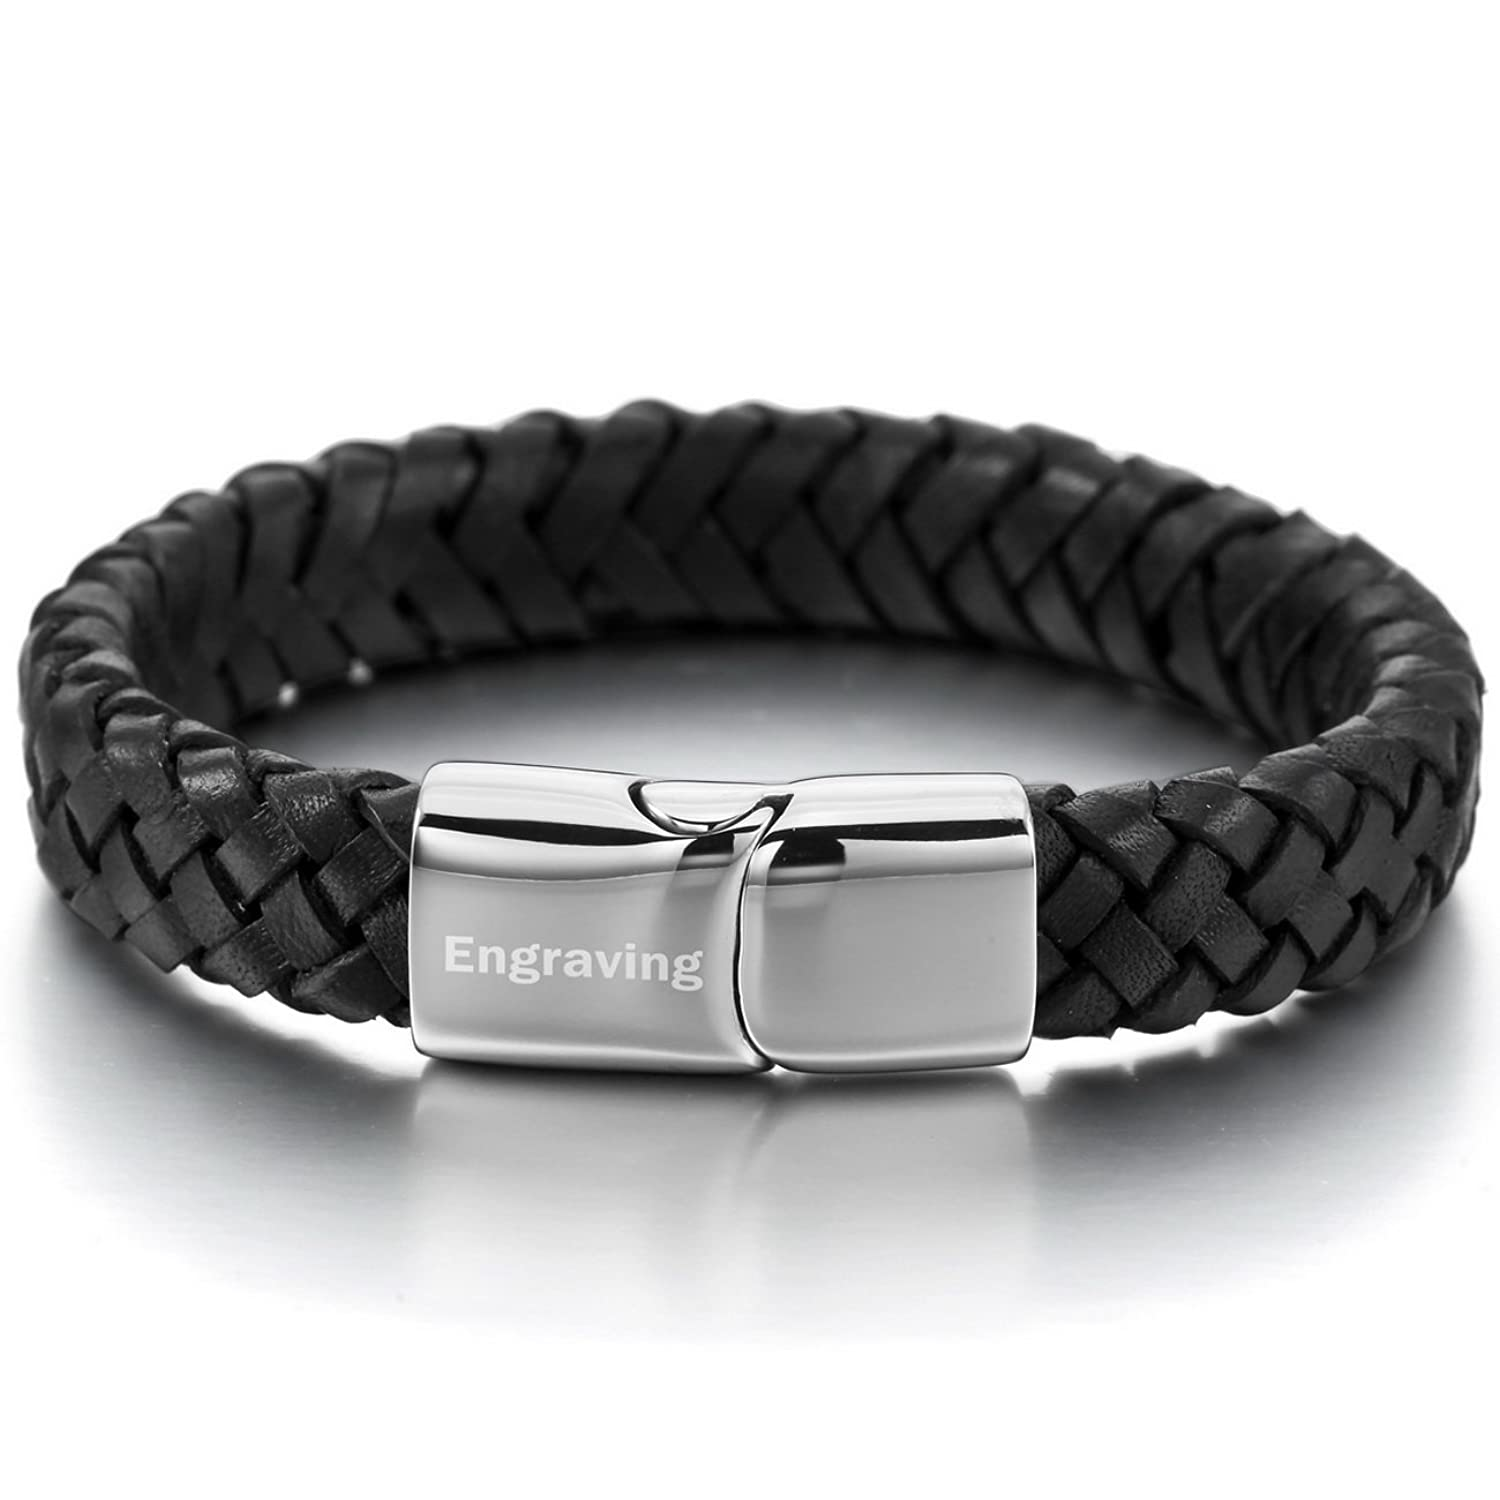 MeMeDIY Black Silver Tone Stainless Steel Genuine Leather Bracelet Bangle - Customized Engraving KtQQjCLehj